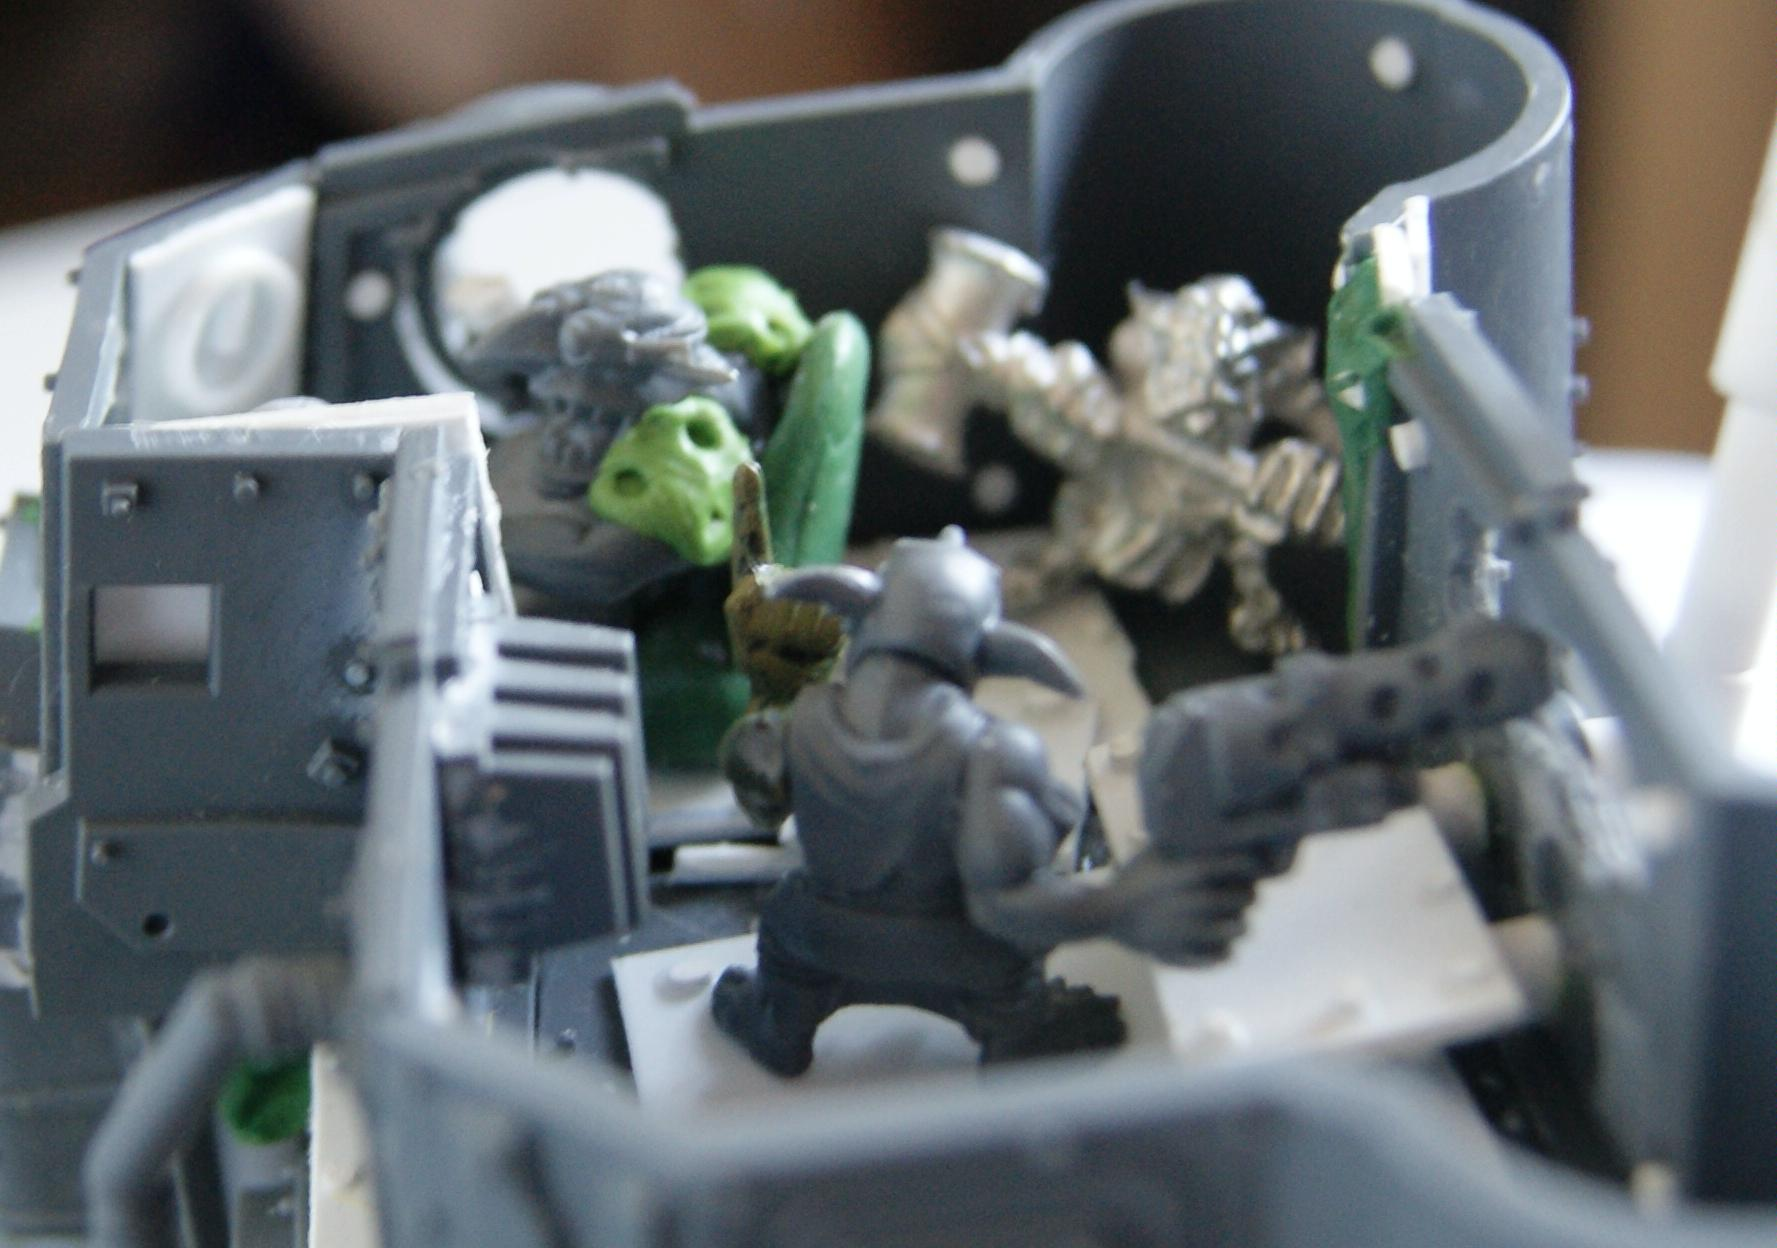 Battlewagon, Conversion, Grot Rebellion, Grot Rebels, Grots, Orks, Warhammer 40,000